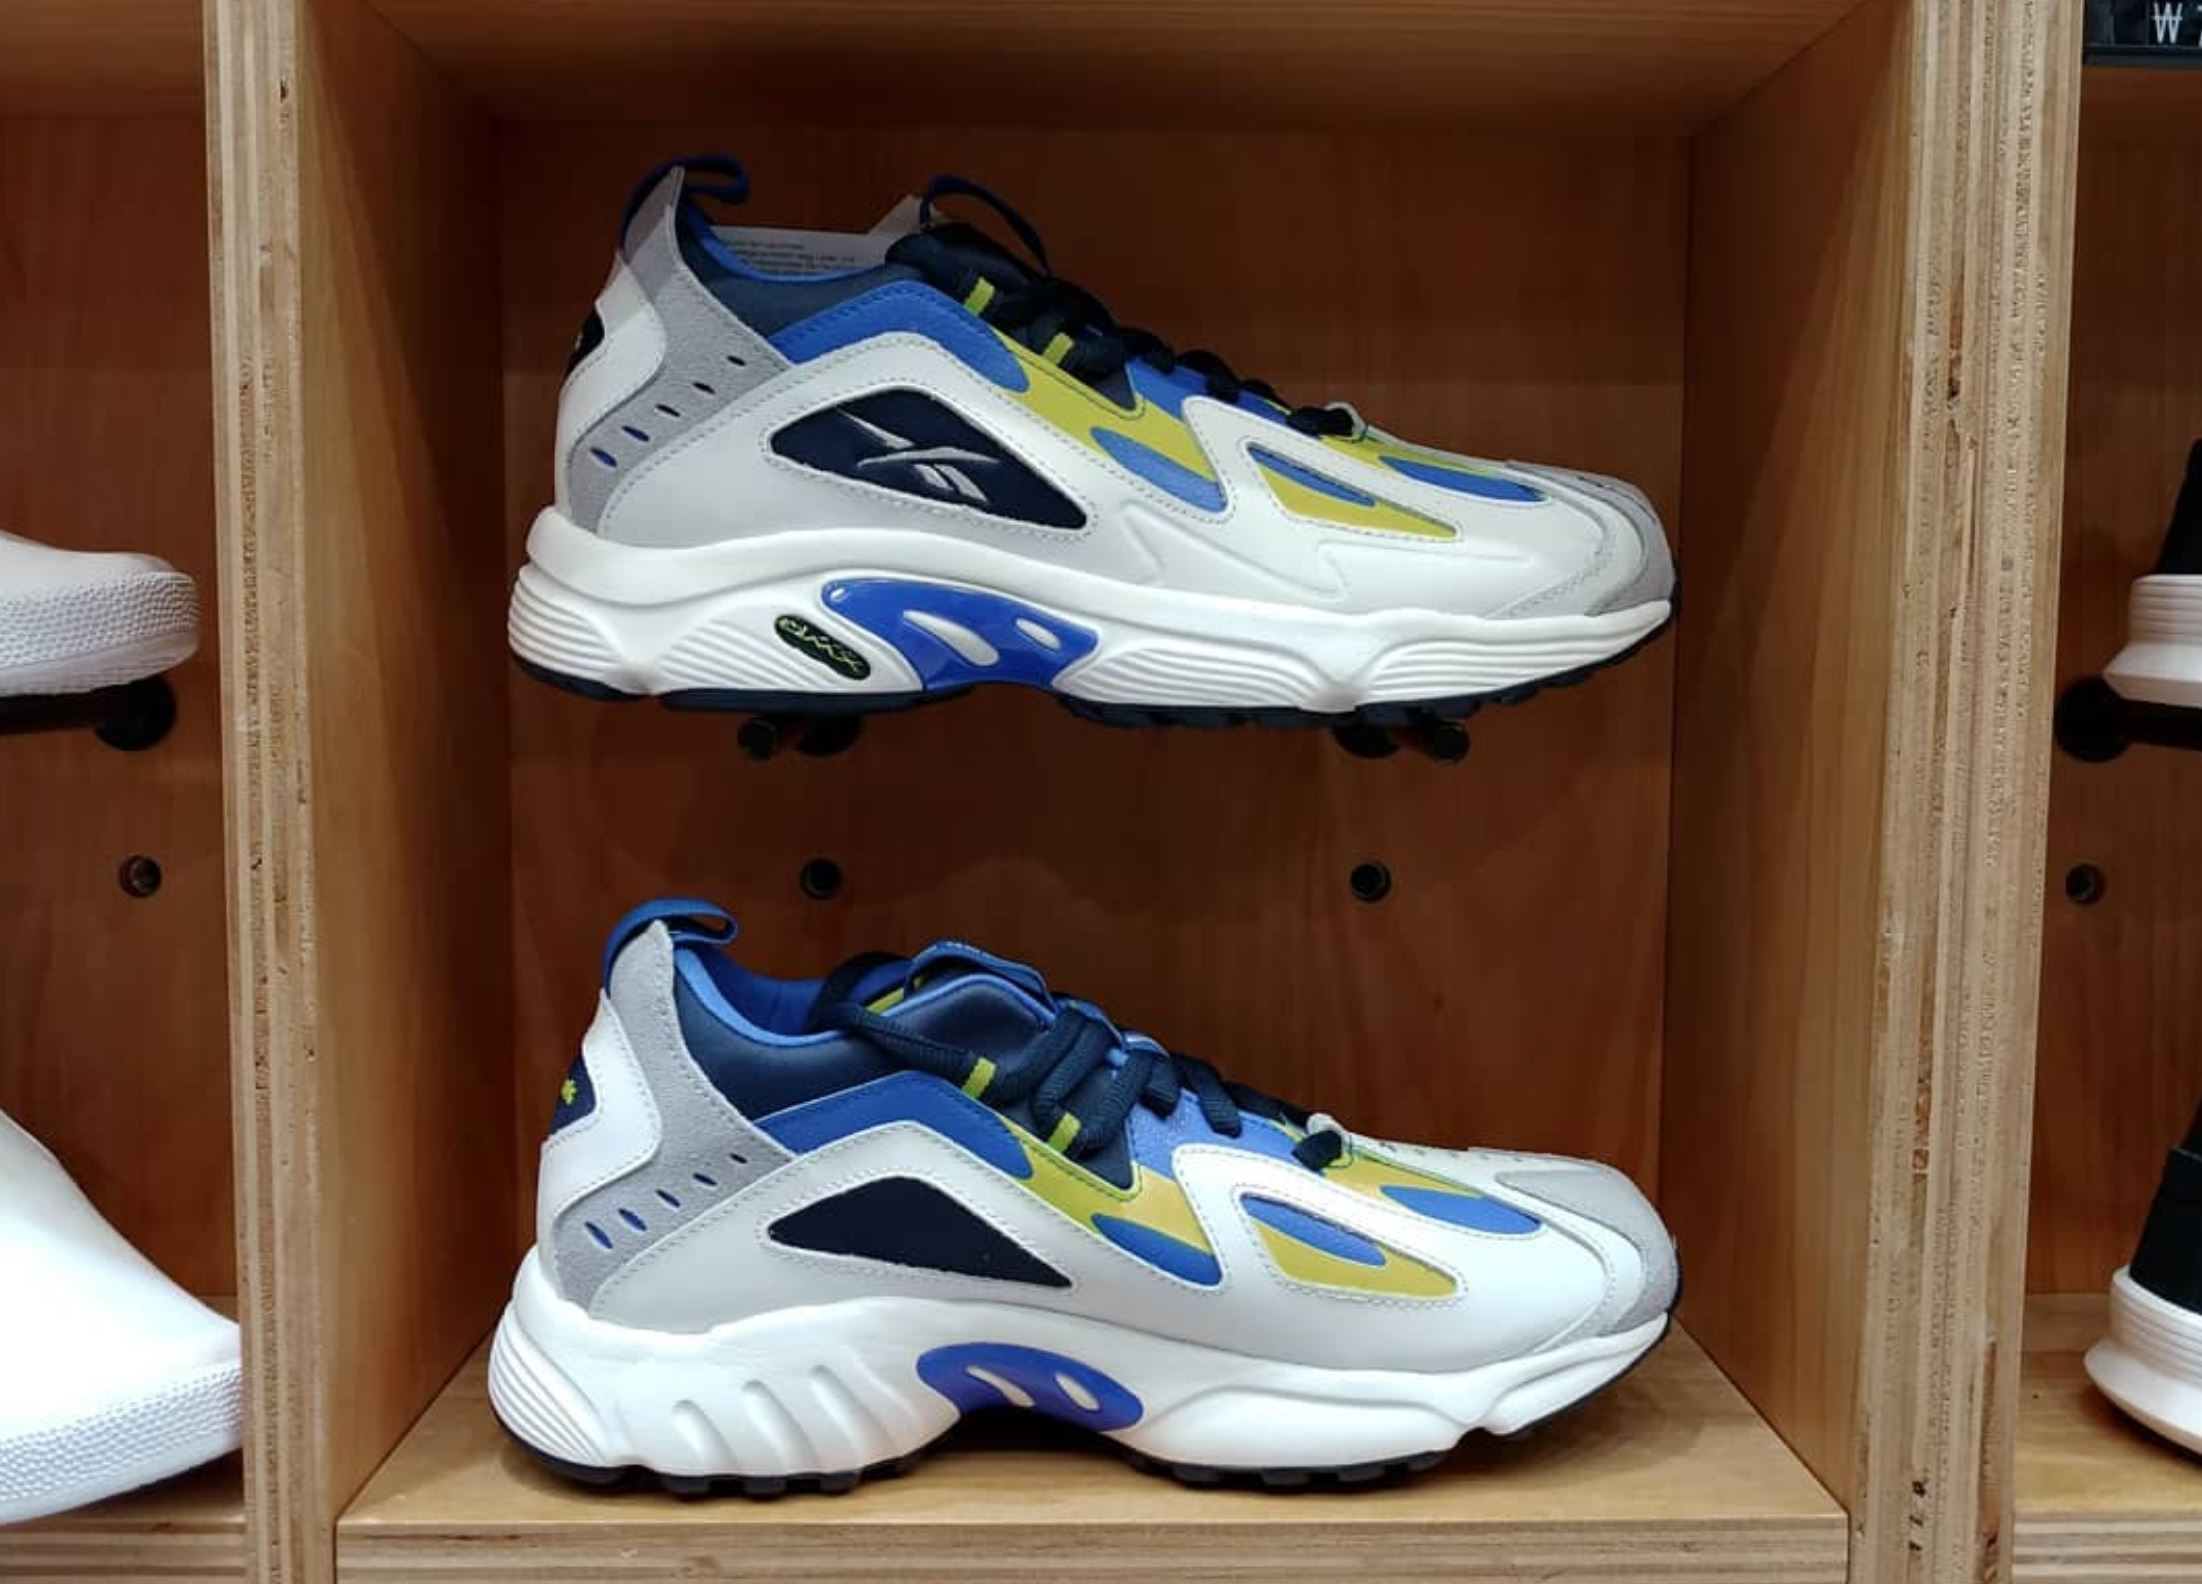 8317fc2f918 Exclusive: The Reebok DMX 1200 Low Has Released in Six Colorways ...